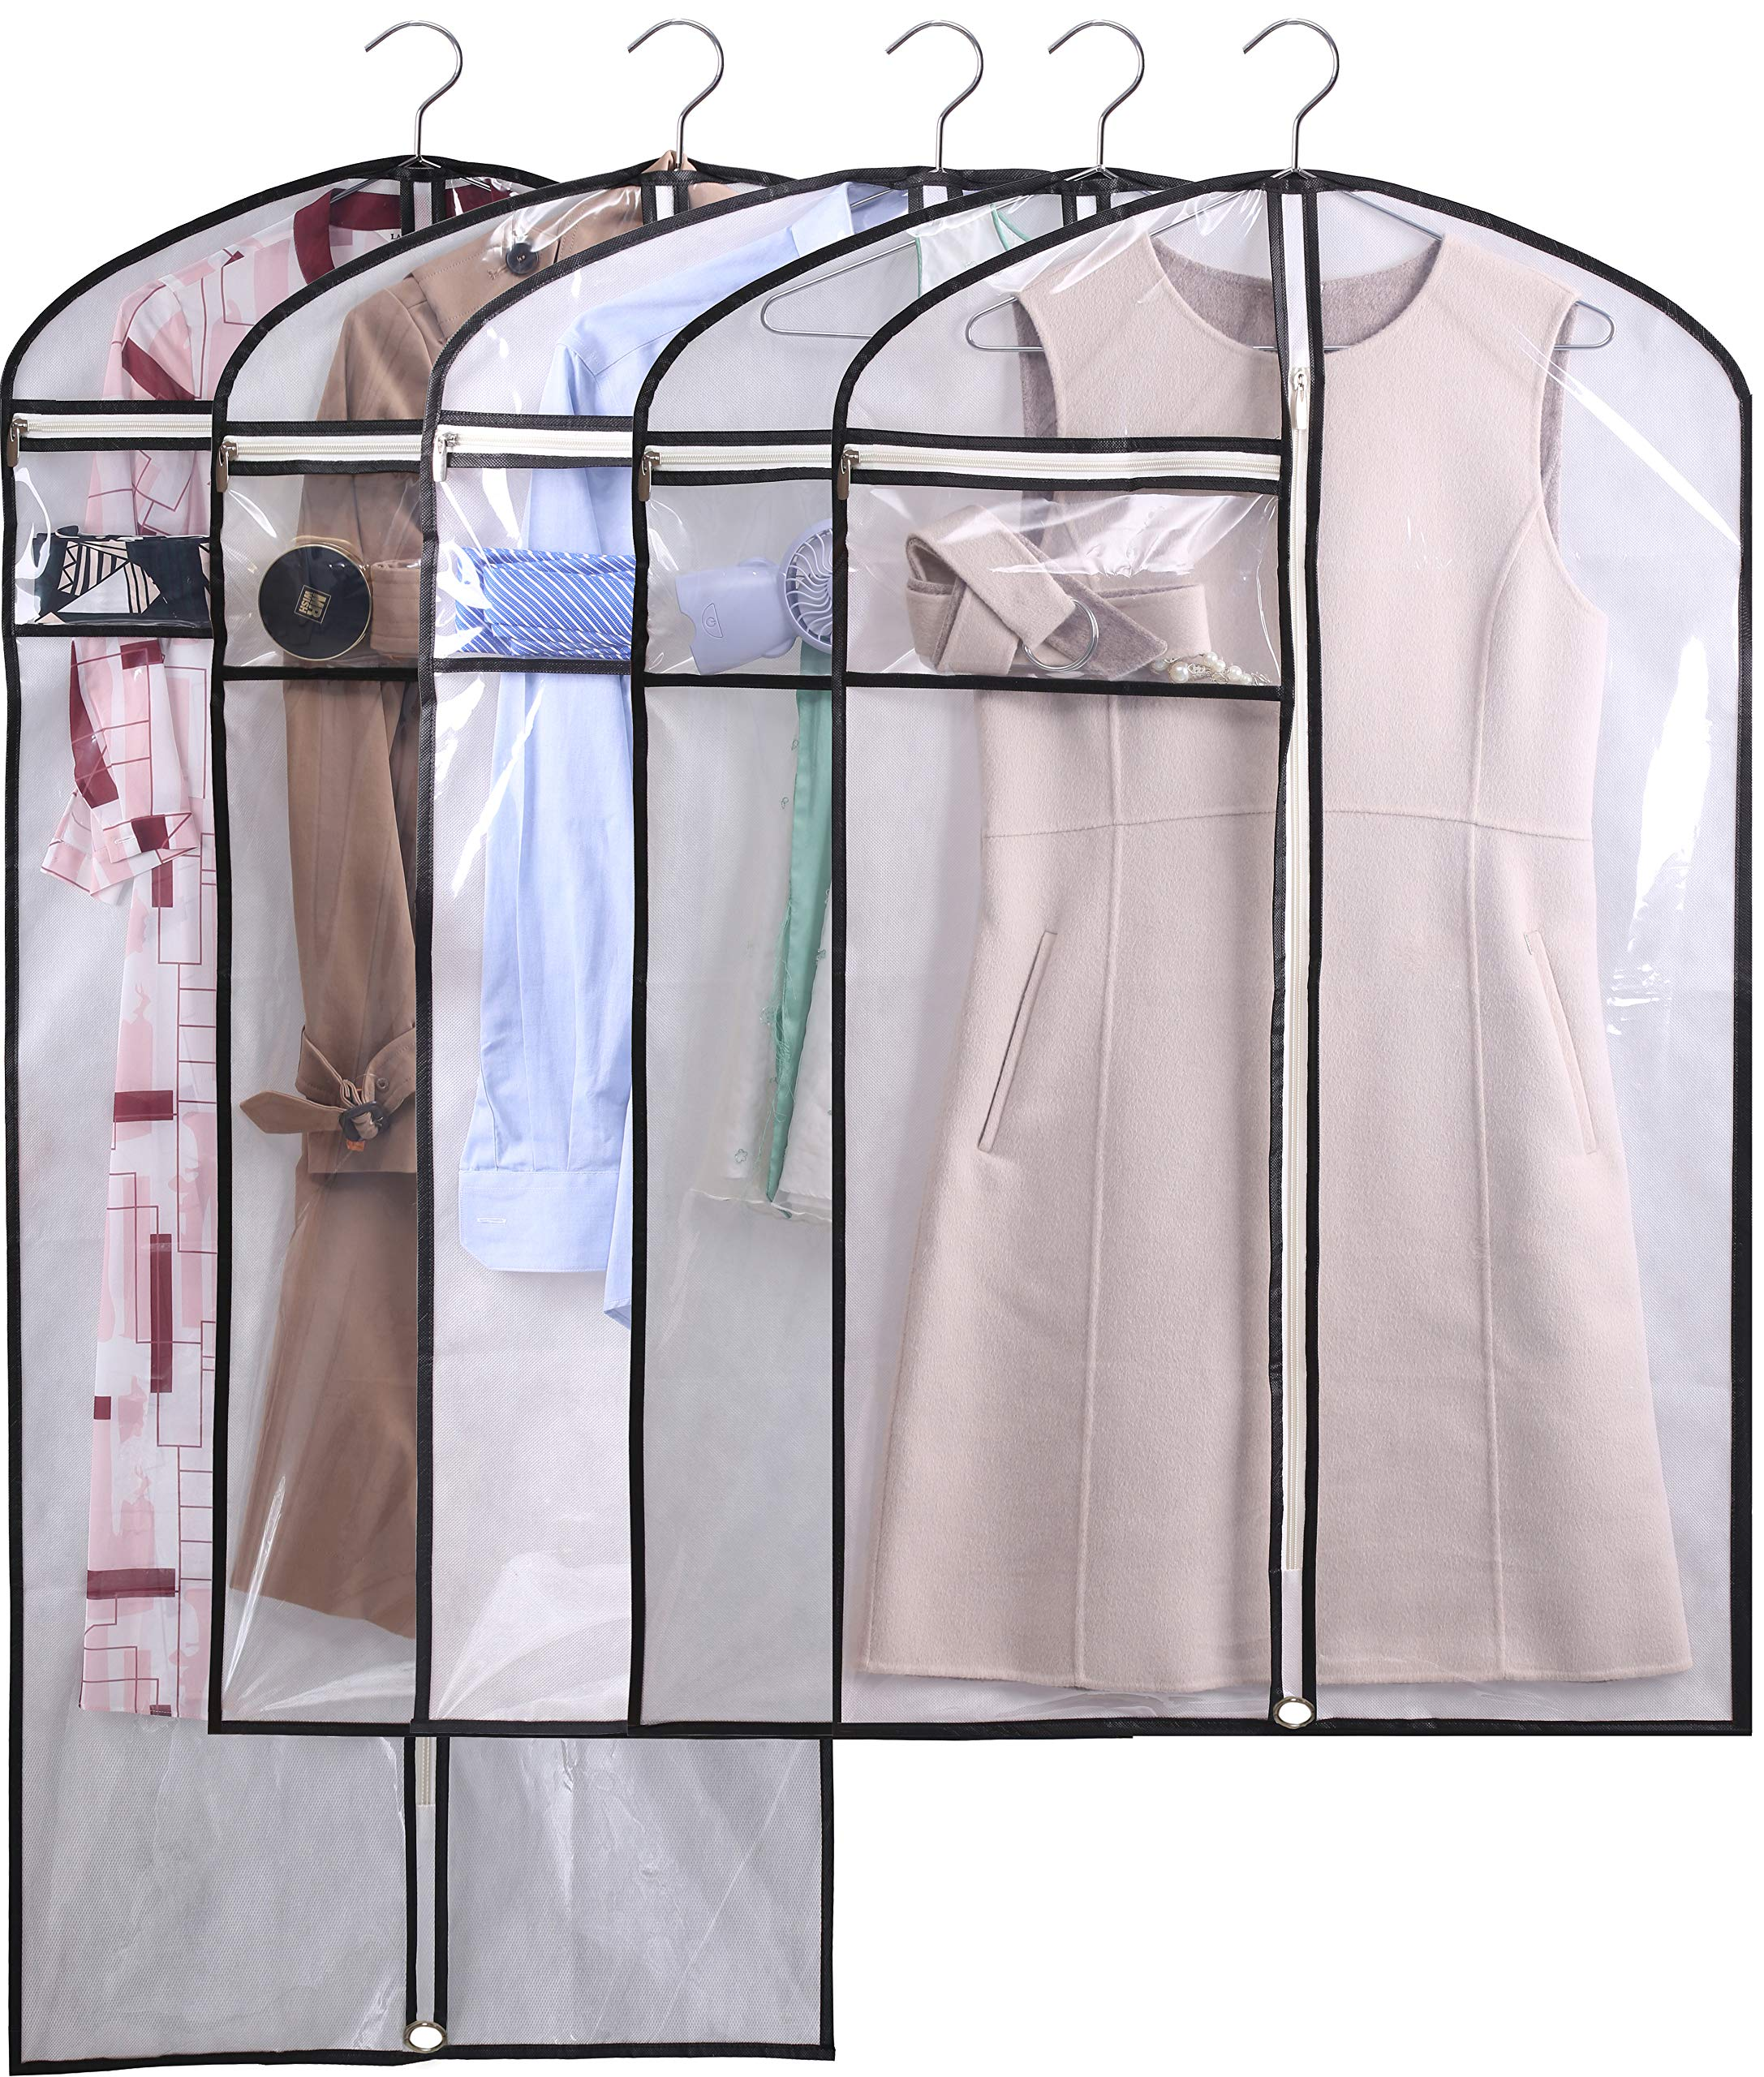 Kimbora Hanging Garment Bags Dance Costume Bags For Closet Competitions Clothes Storage Clear Dust Covers Breathable Light Weight Suit Bags With Accessories Zipper Pocket White 5 Buy Online In Albania At Albania Desertcart Com